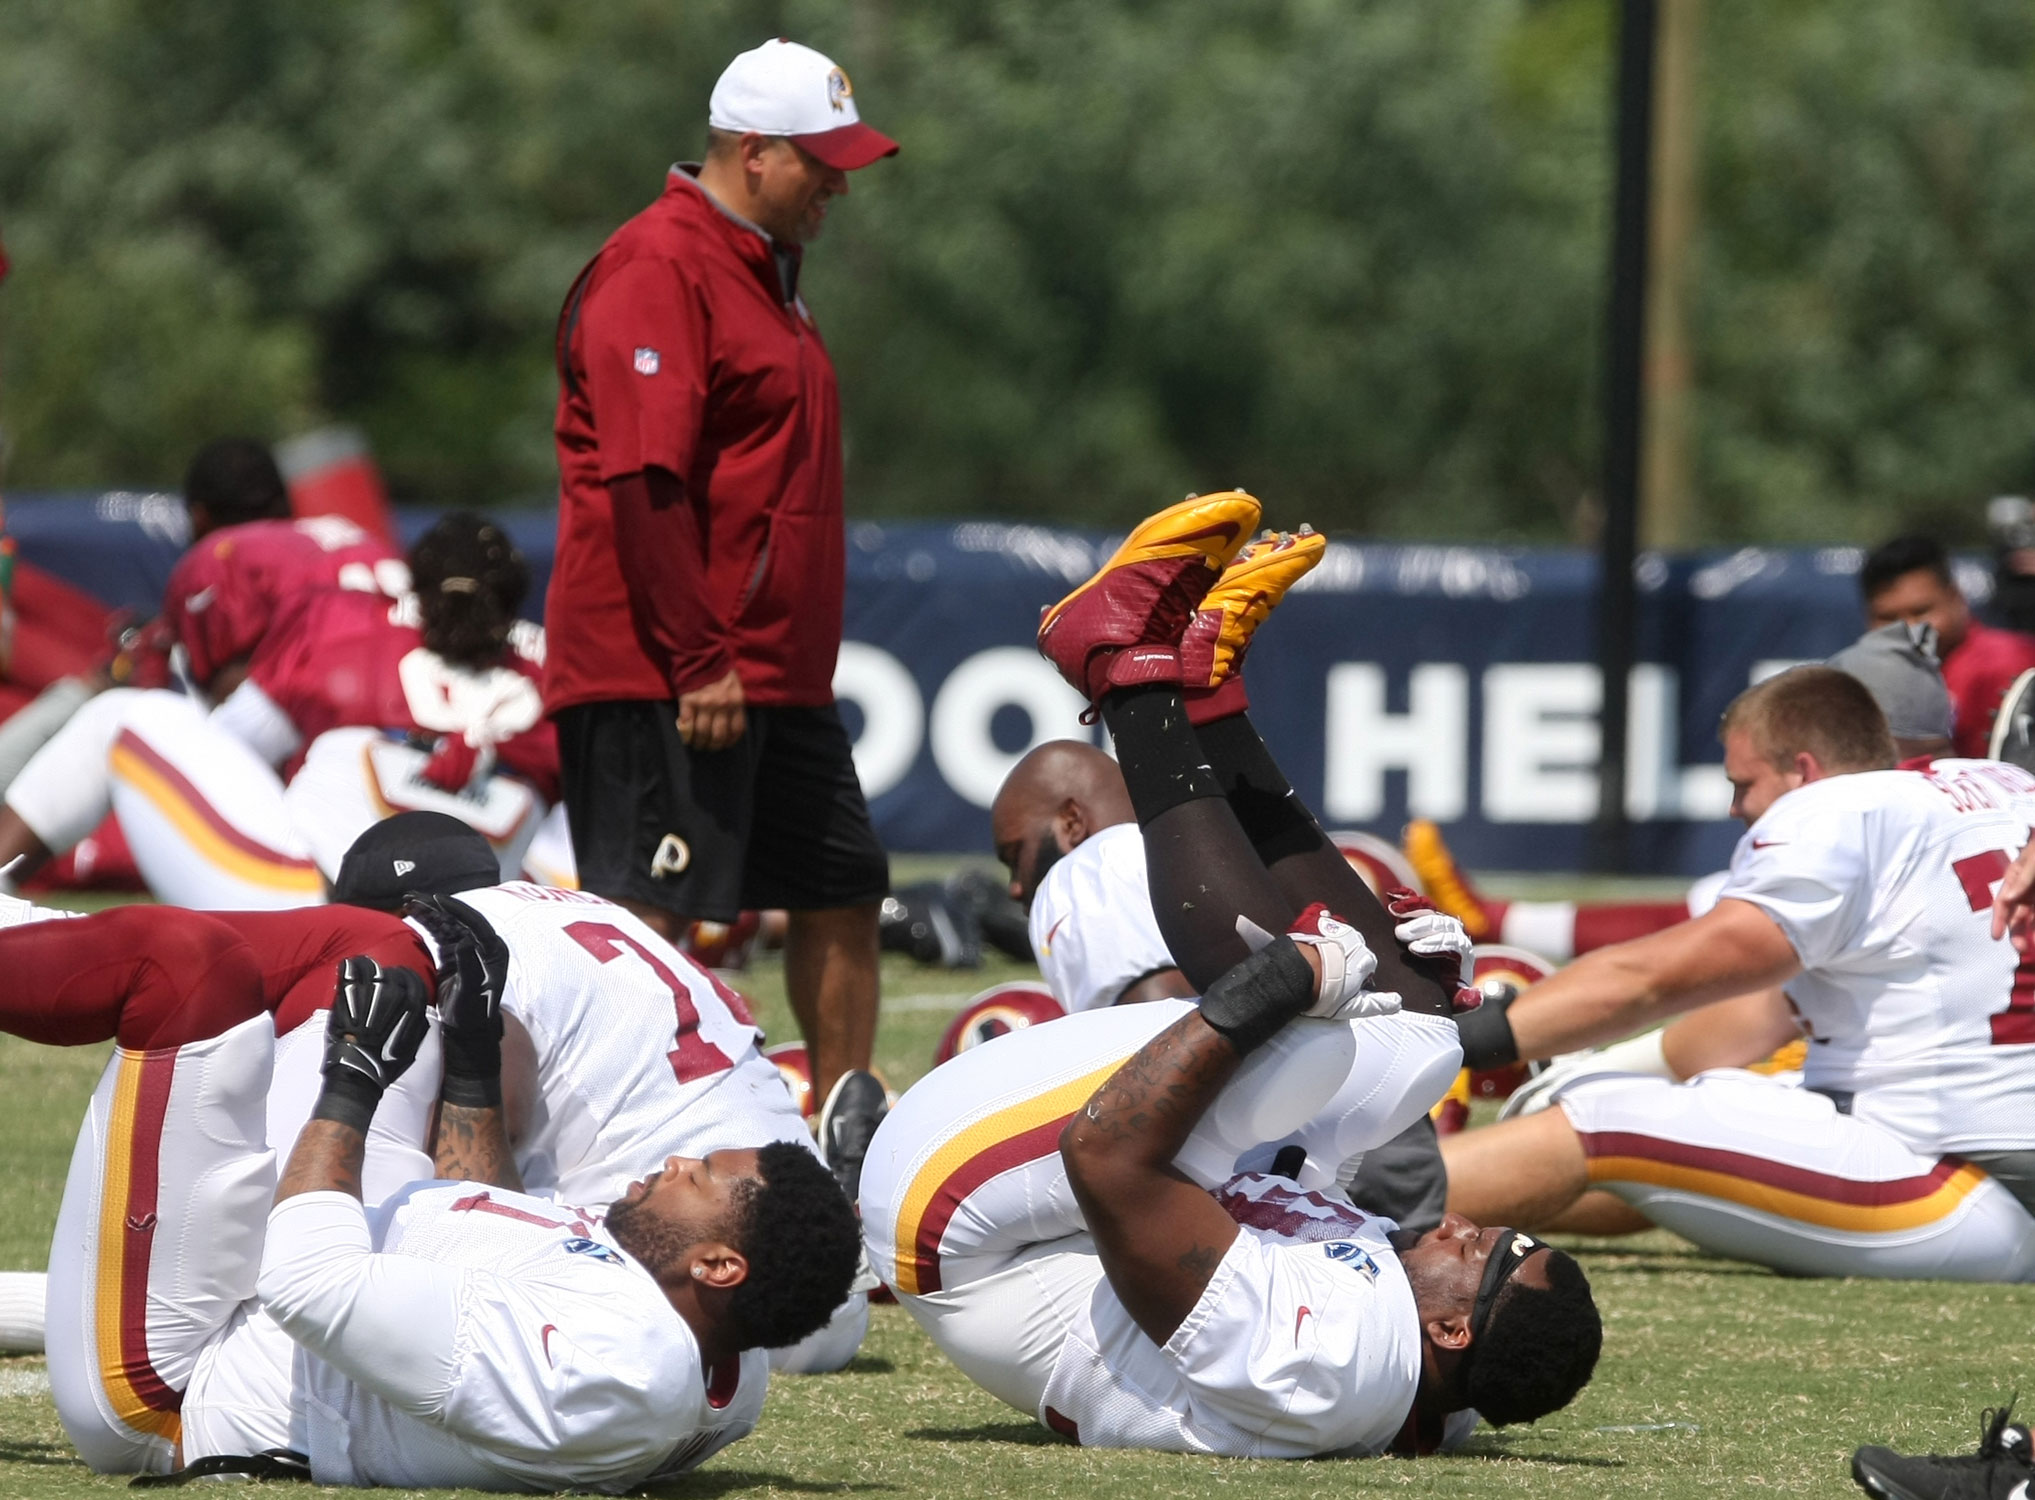 Redskins prepared for Texans' visit to Richmond